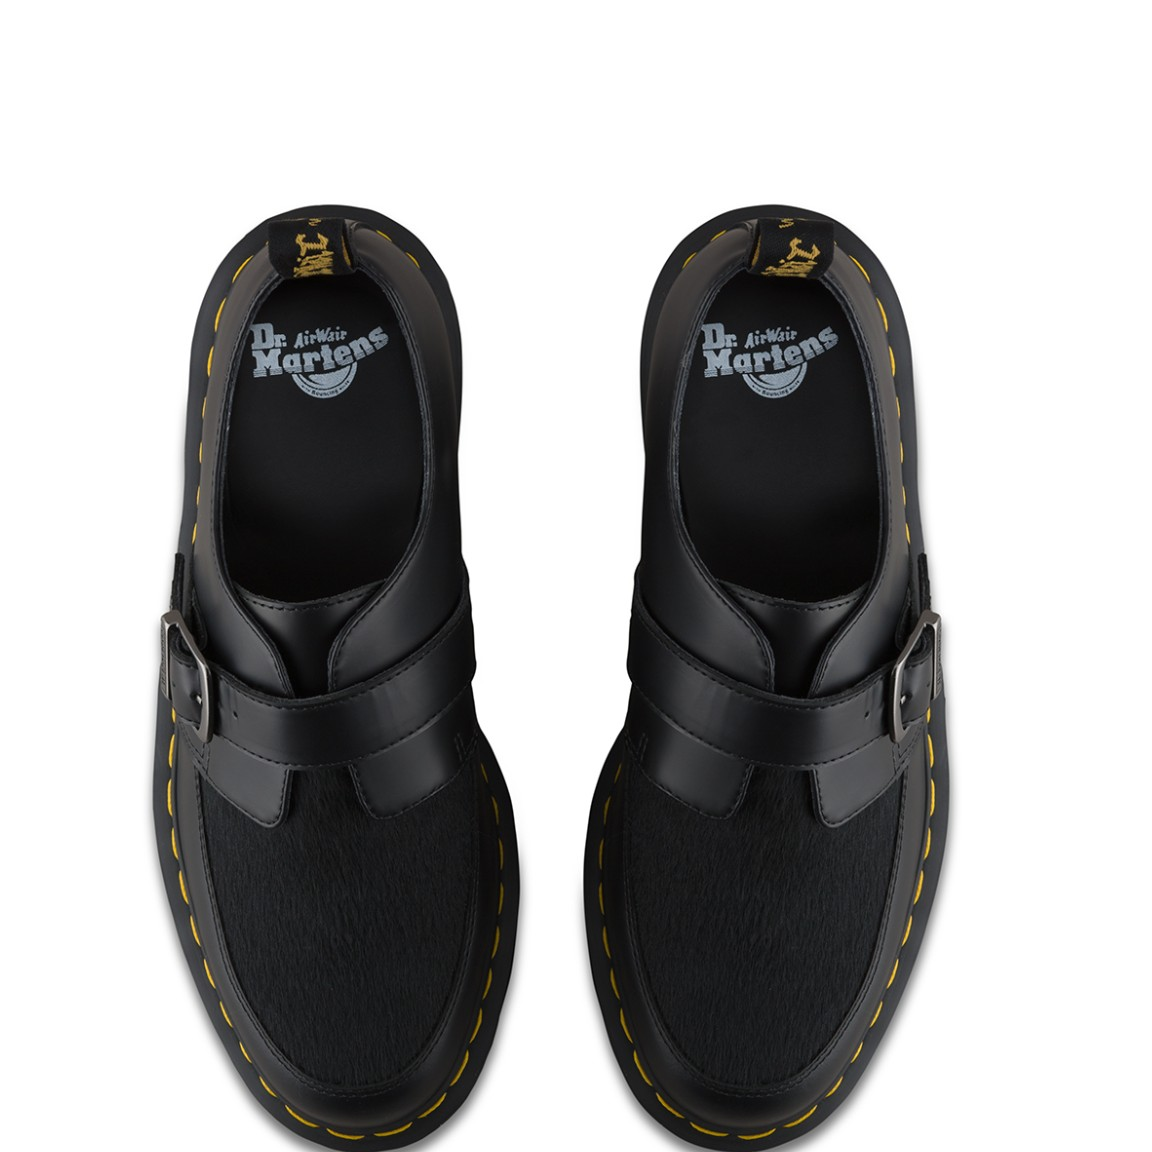 Dr martens ramsey monk size 9, brand